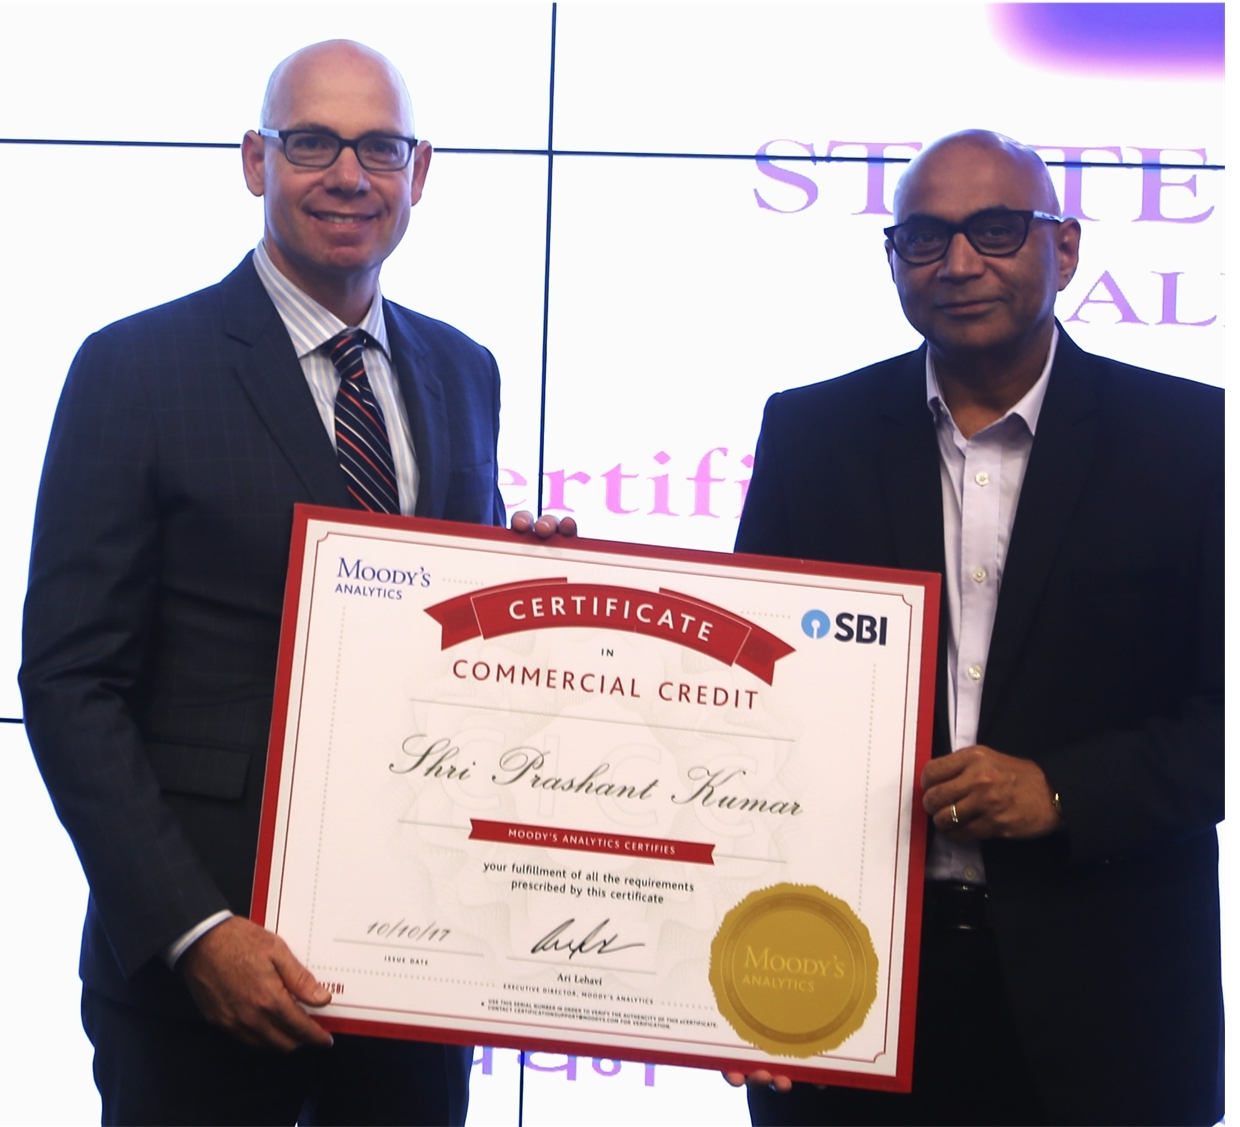 Sbi Launches Credit Certification In Collaboration With Moodys